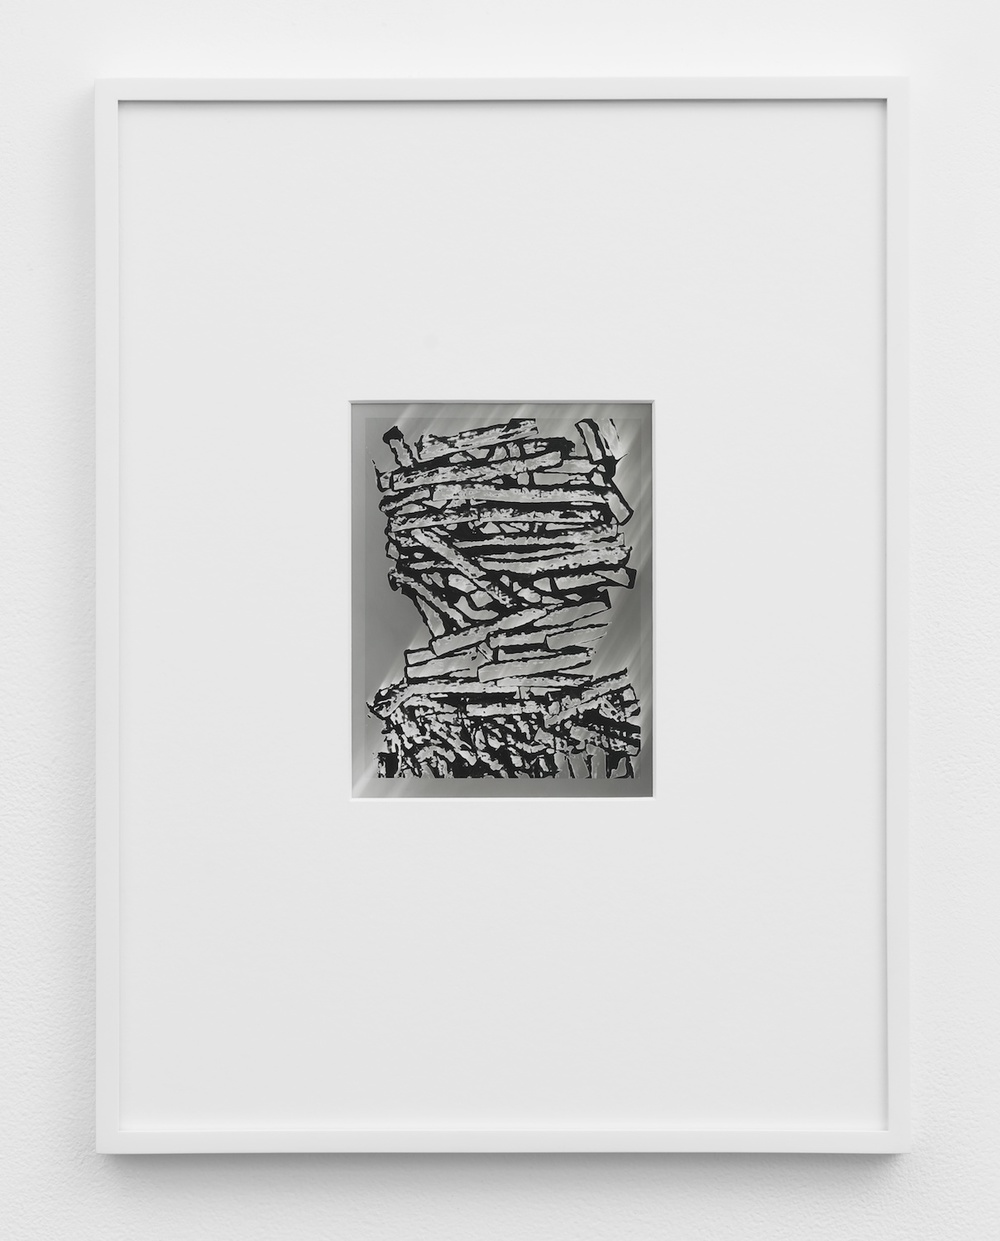 Anthony Pearson  Untitled (Solarization)  2011 Solarized silver gelatin photograph in artist frame 17 ½h x 13 ¼w x ¾d in AP277